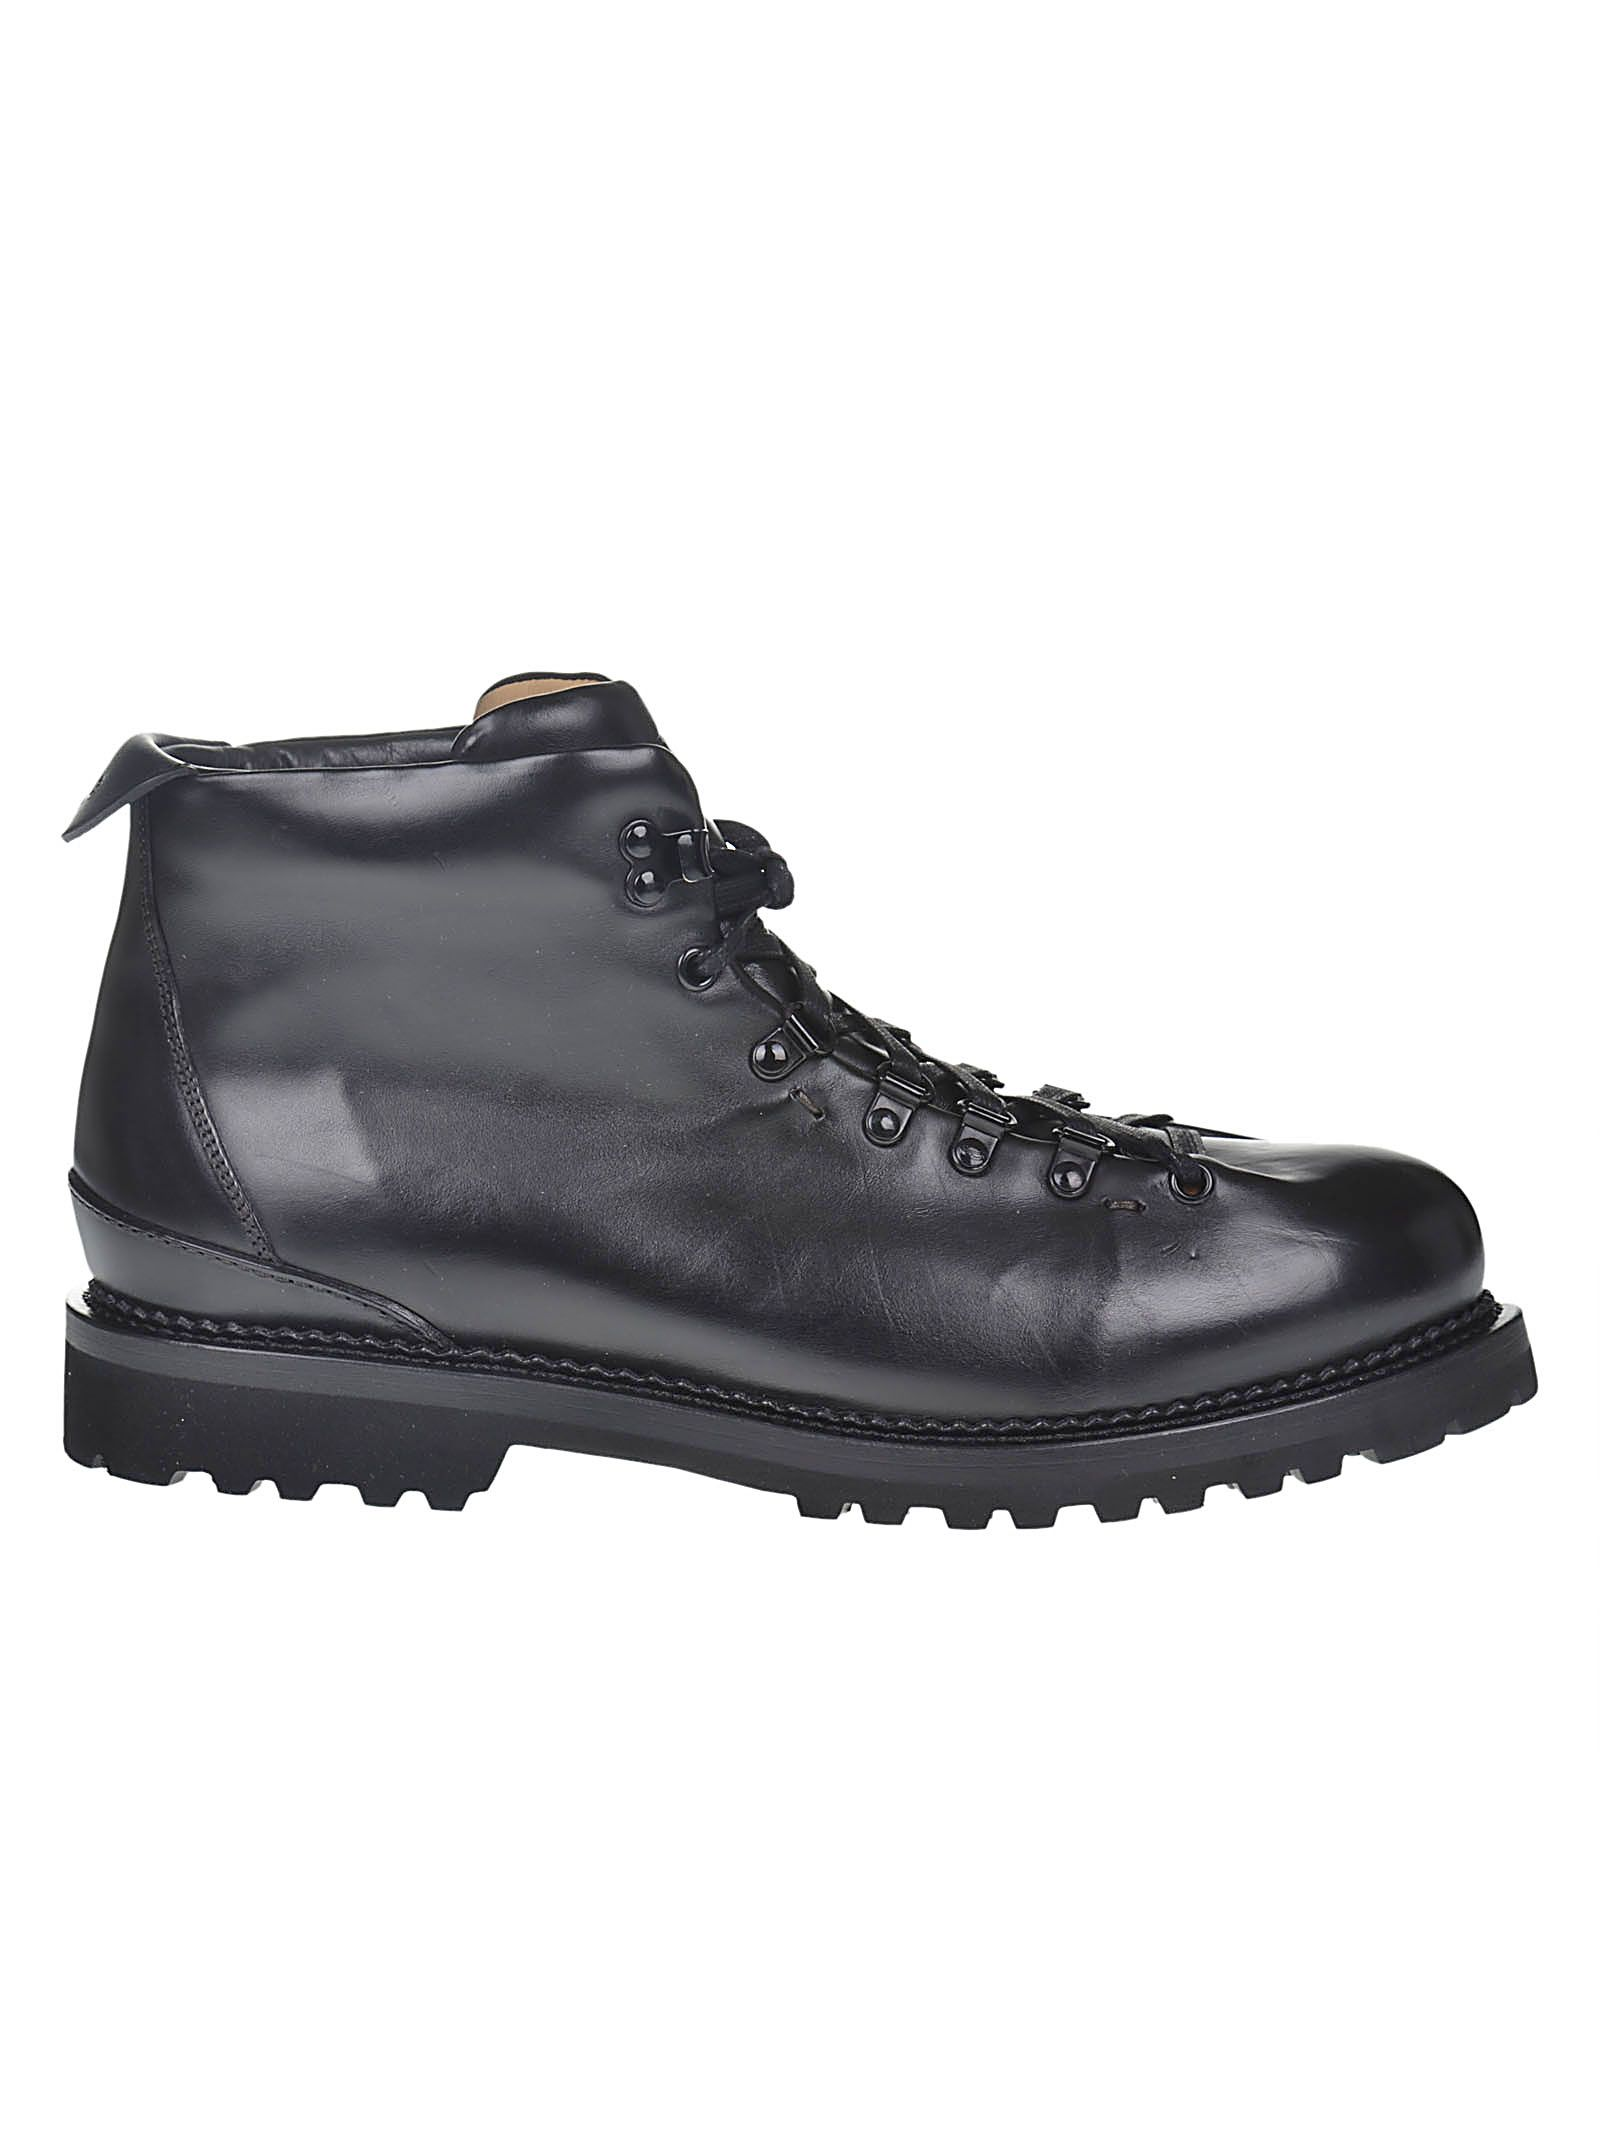 BUTTERO Classic Laced-Up Ankle Boots in Black